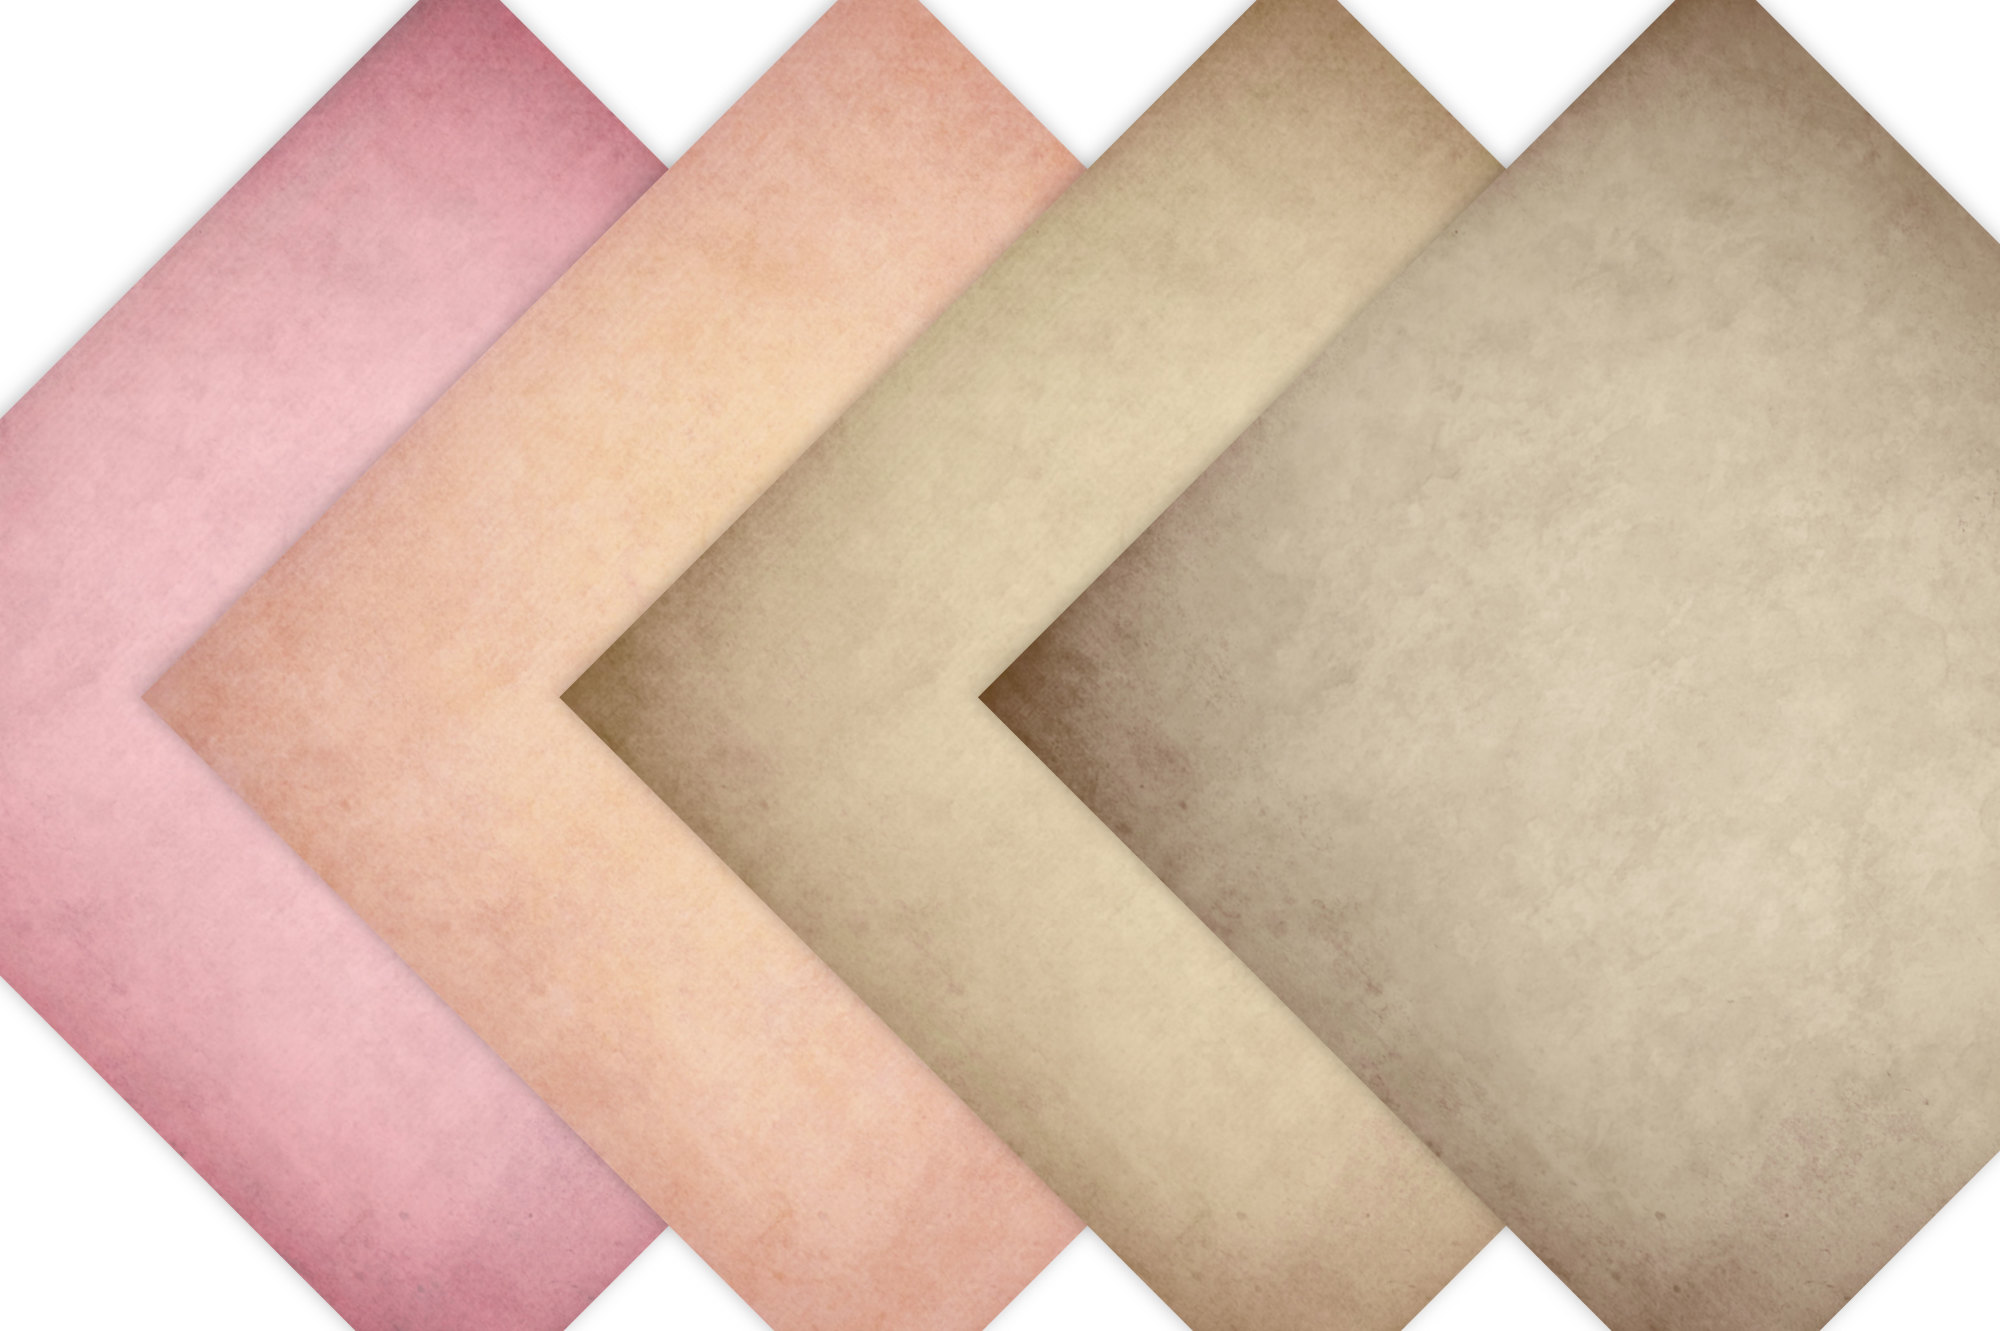 Vintage Paper Backgrounds - Textured Backgrounds in Shabby Chic Colors example image 4